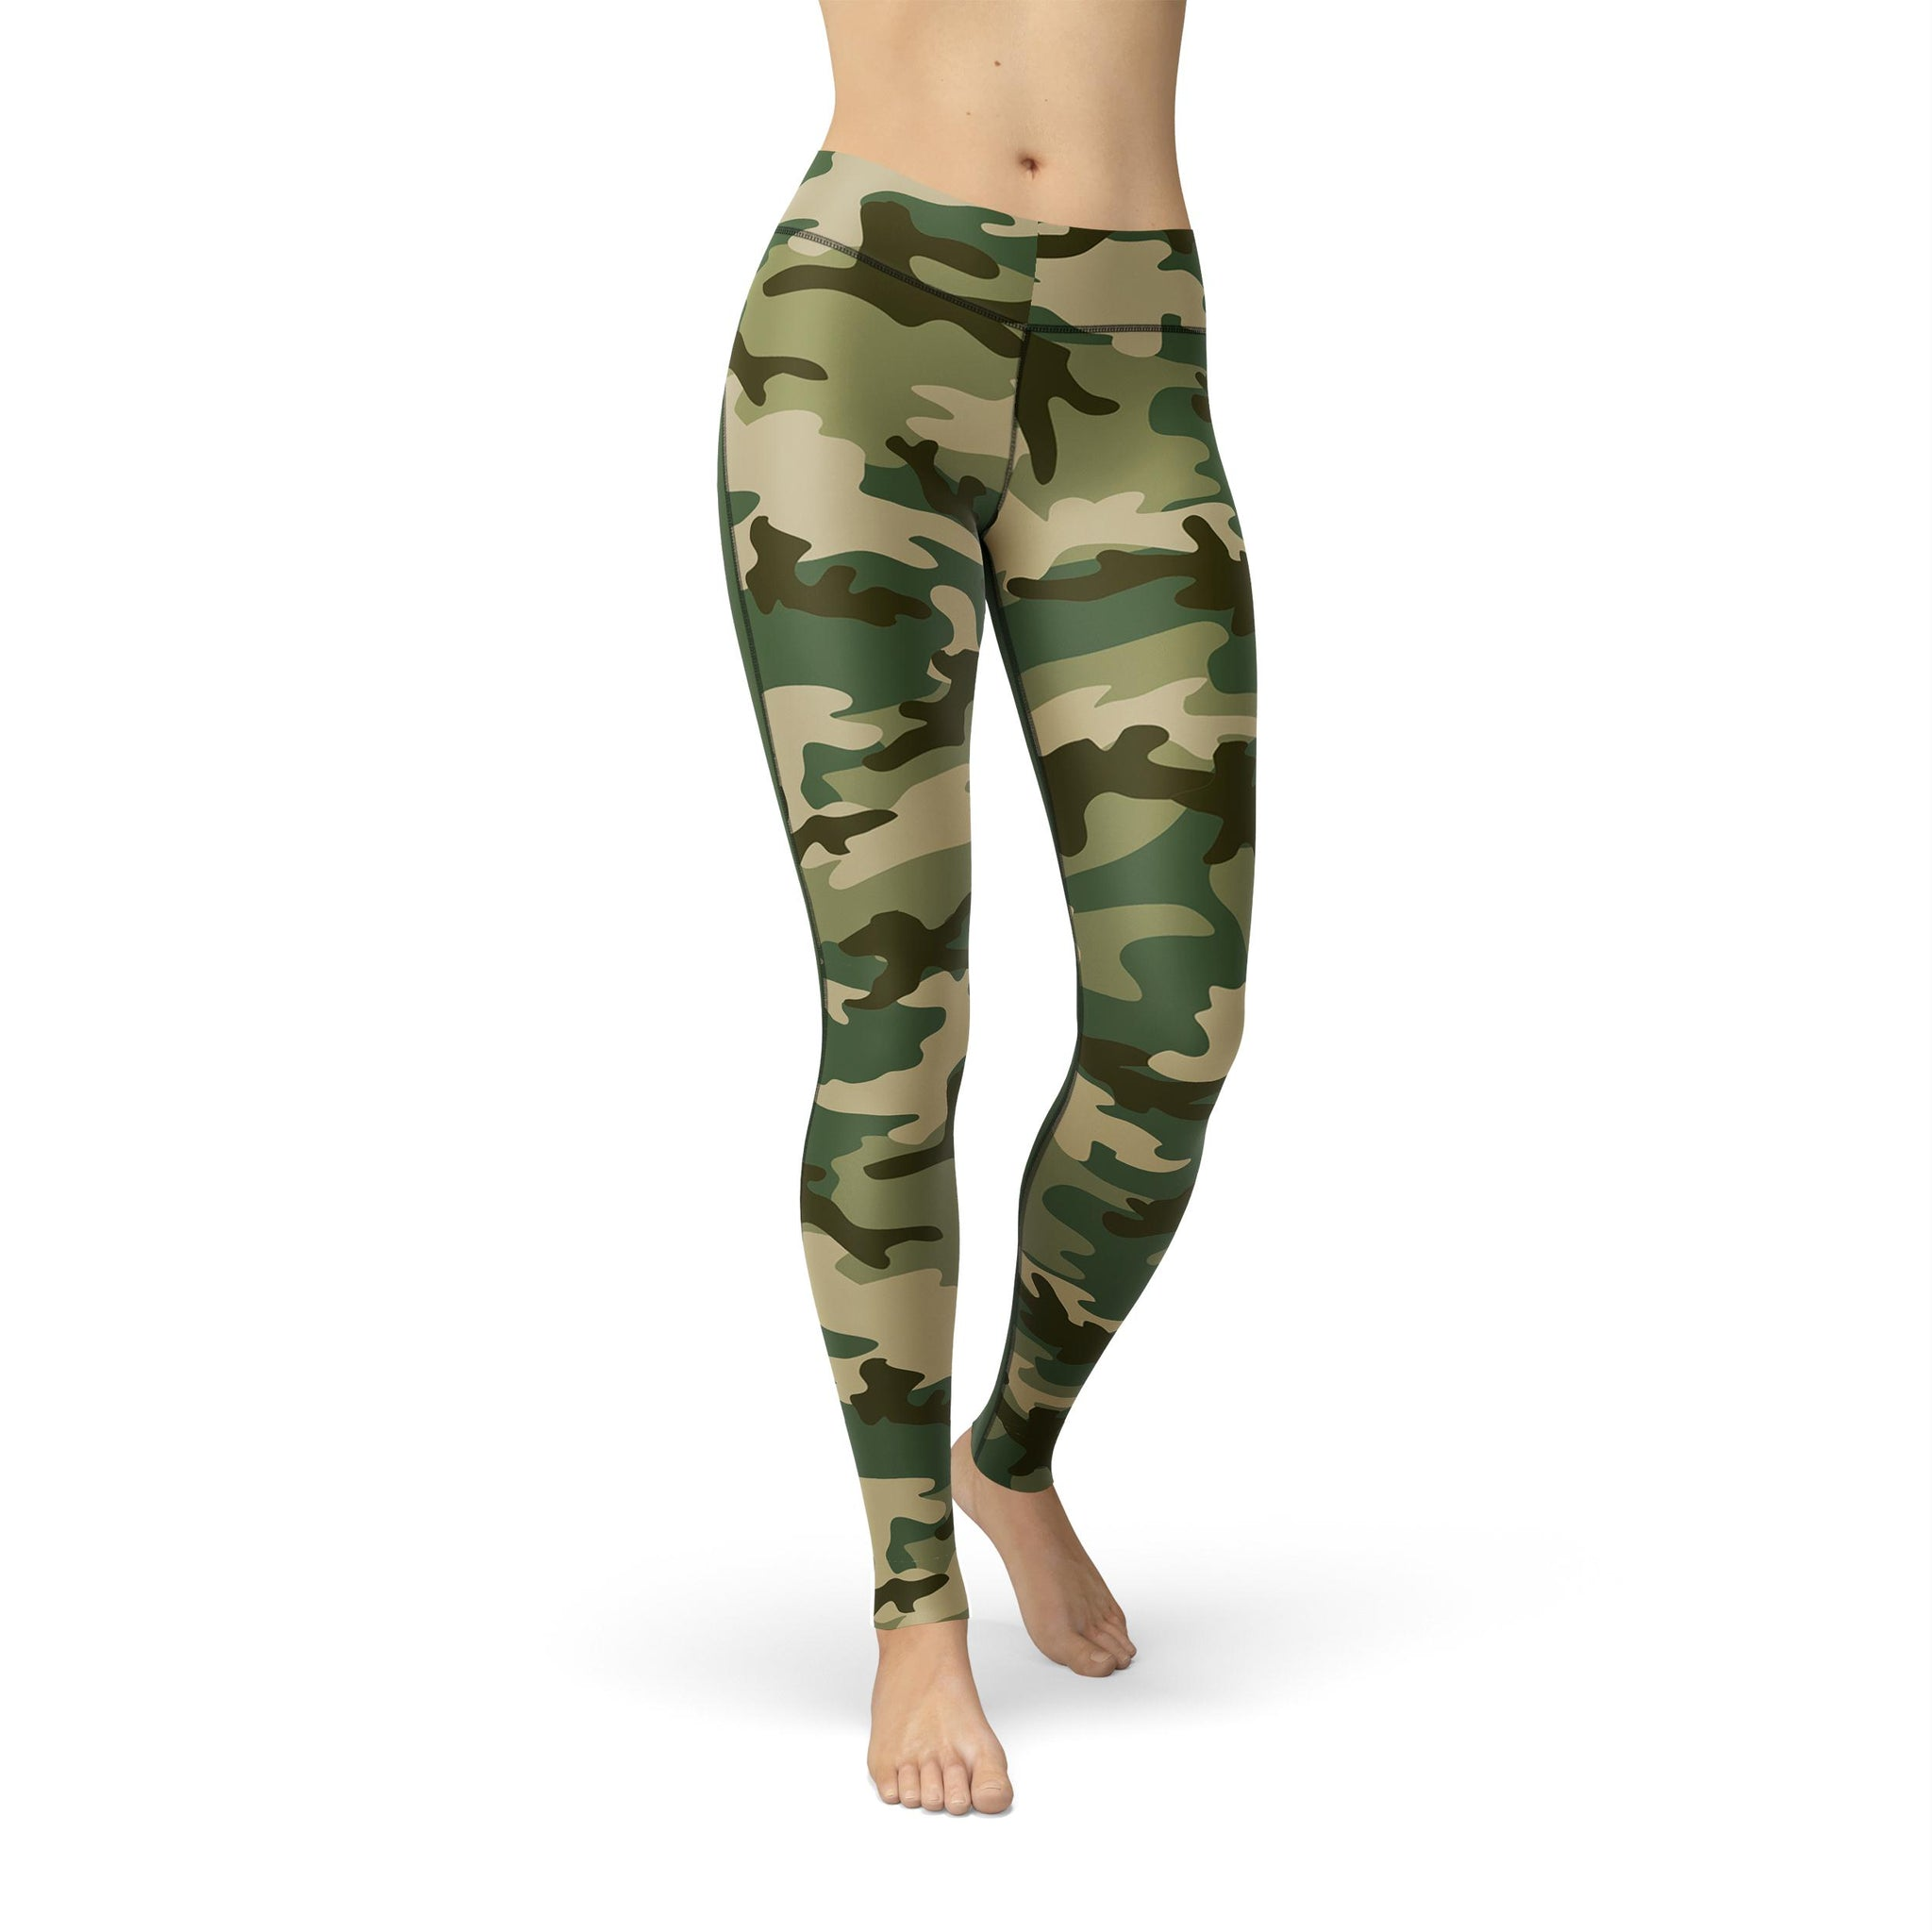 High-Waist Forest Camouflage Yoga Pants